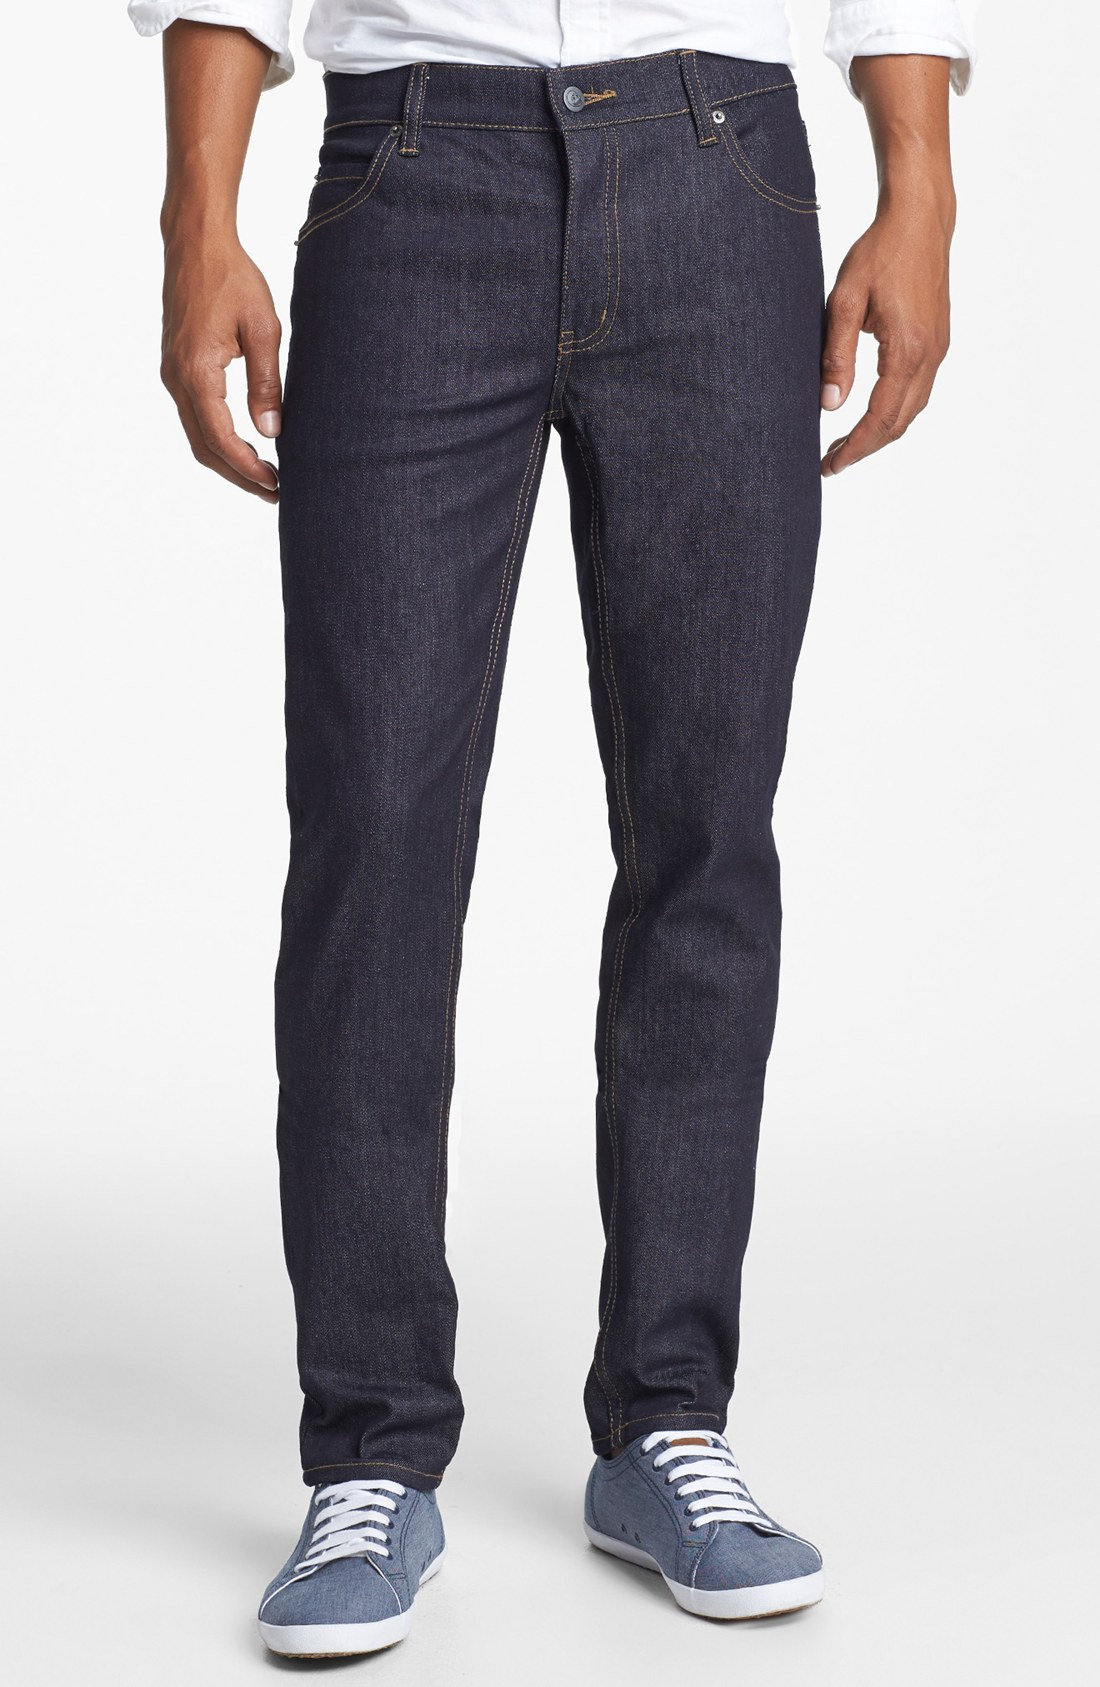 Find great deals on eBay for cheap mens skinny jeans. Shop with confidence.